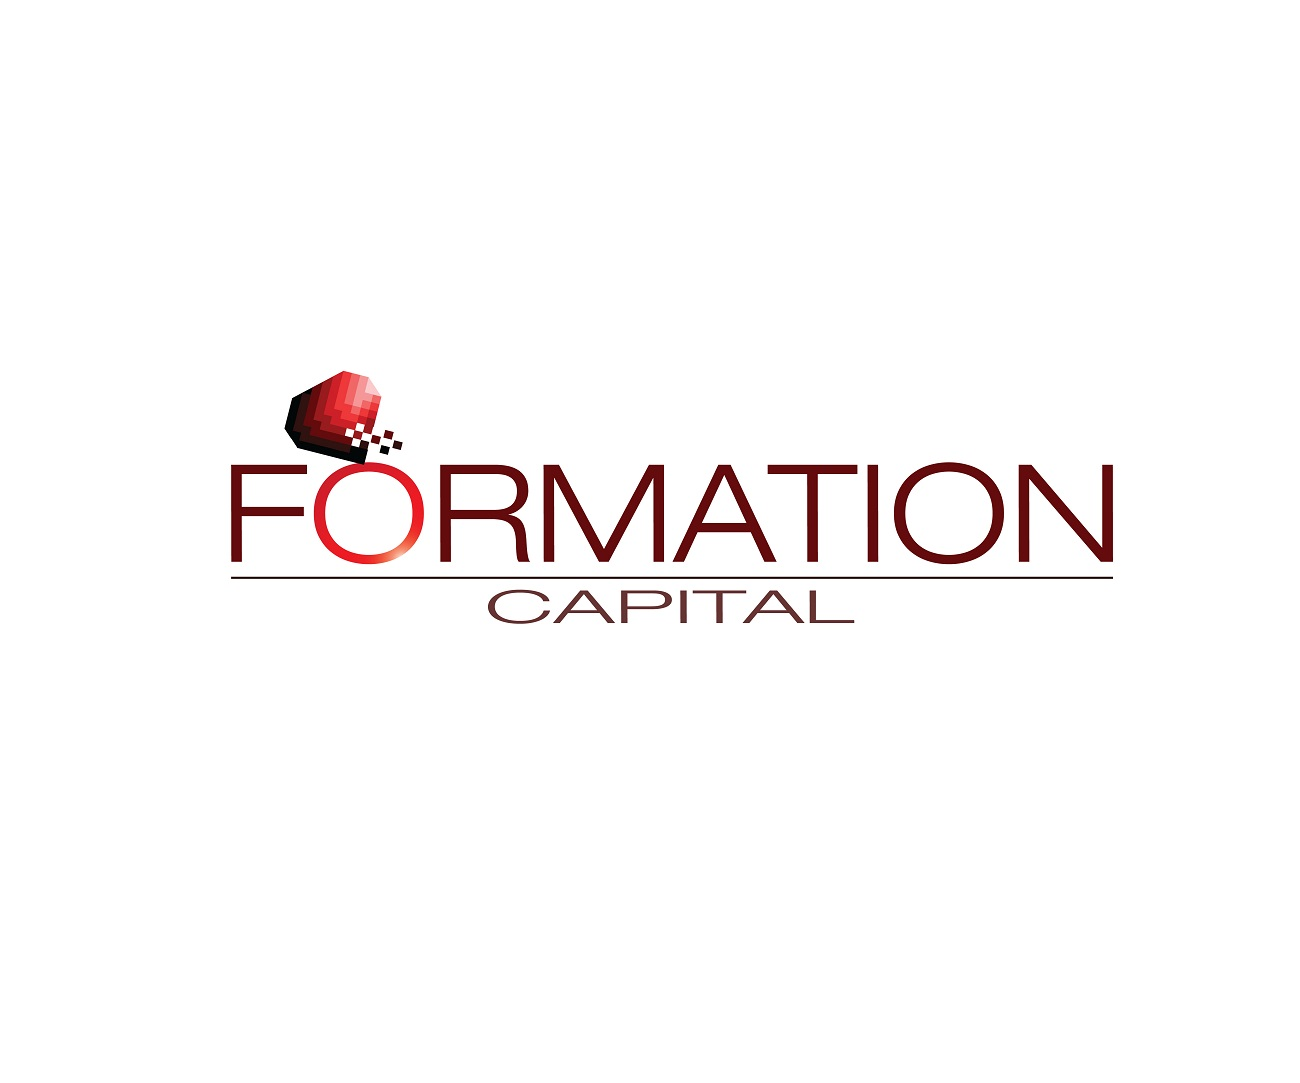 Logo Design by jhunzkie24 - Entry No. 154 in the Logo Design Contest Inspiring Logo Design for Formation Capital.